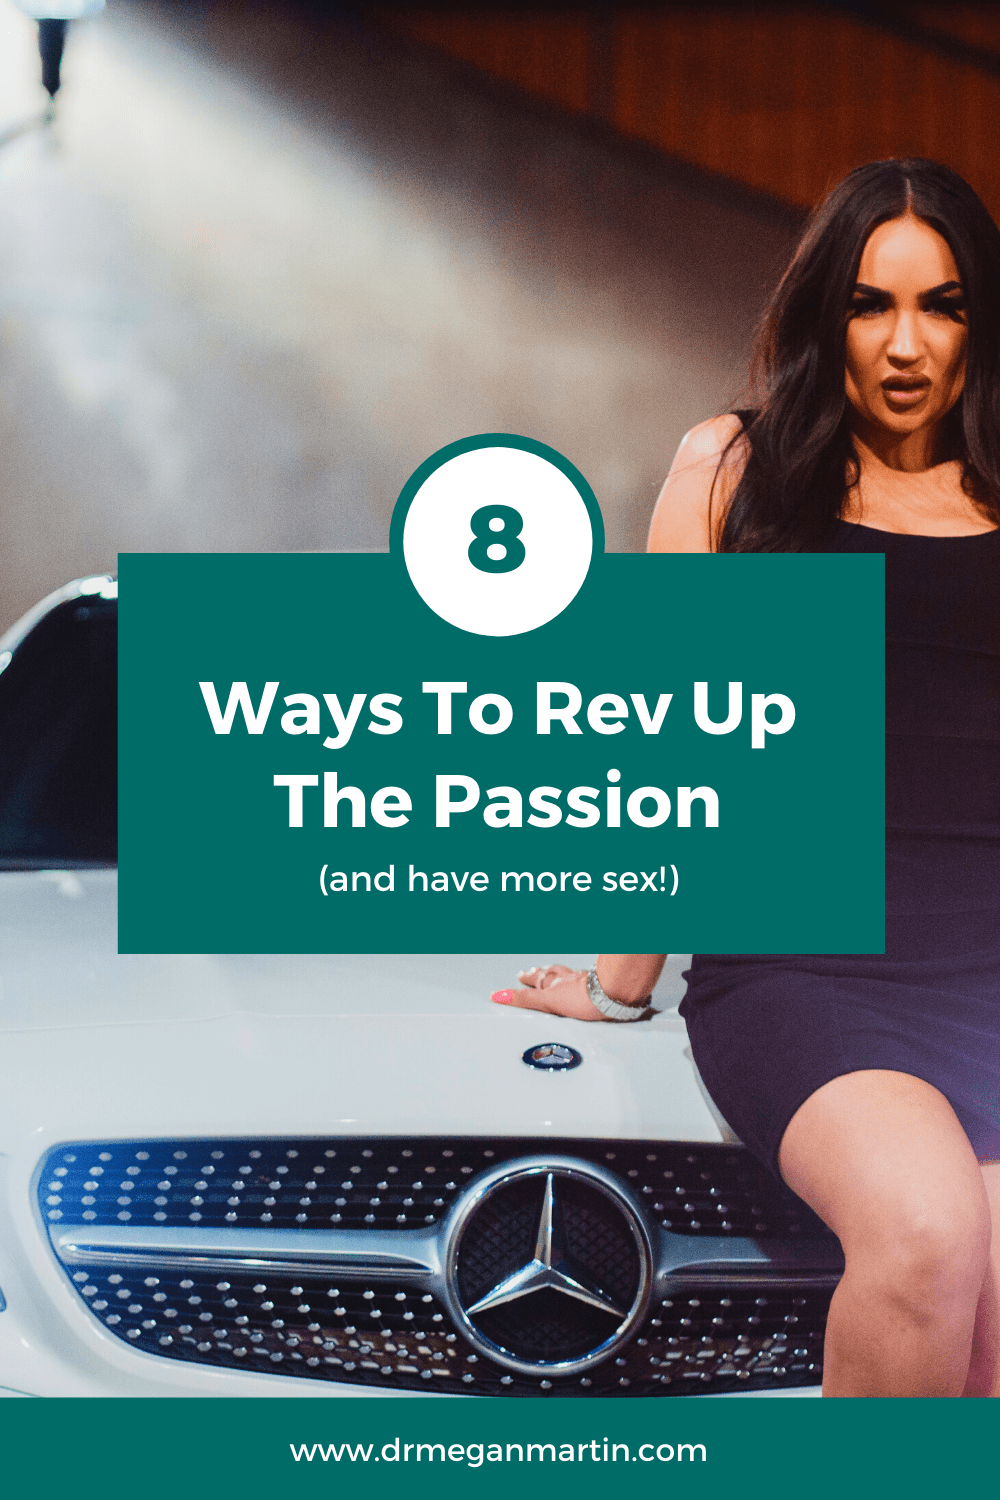 8 ways to hit the accelerator on your libido